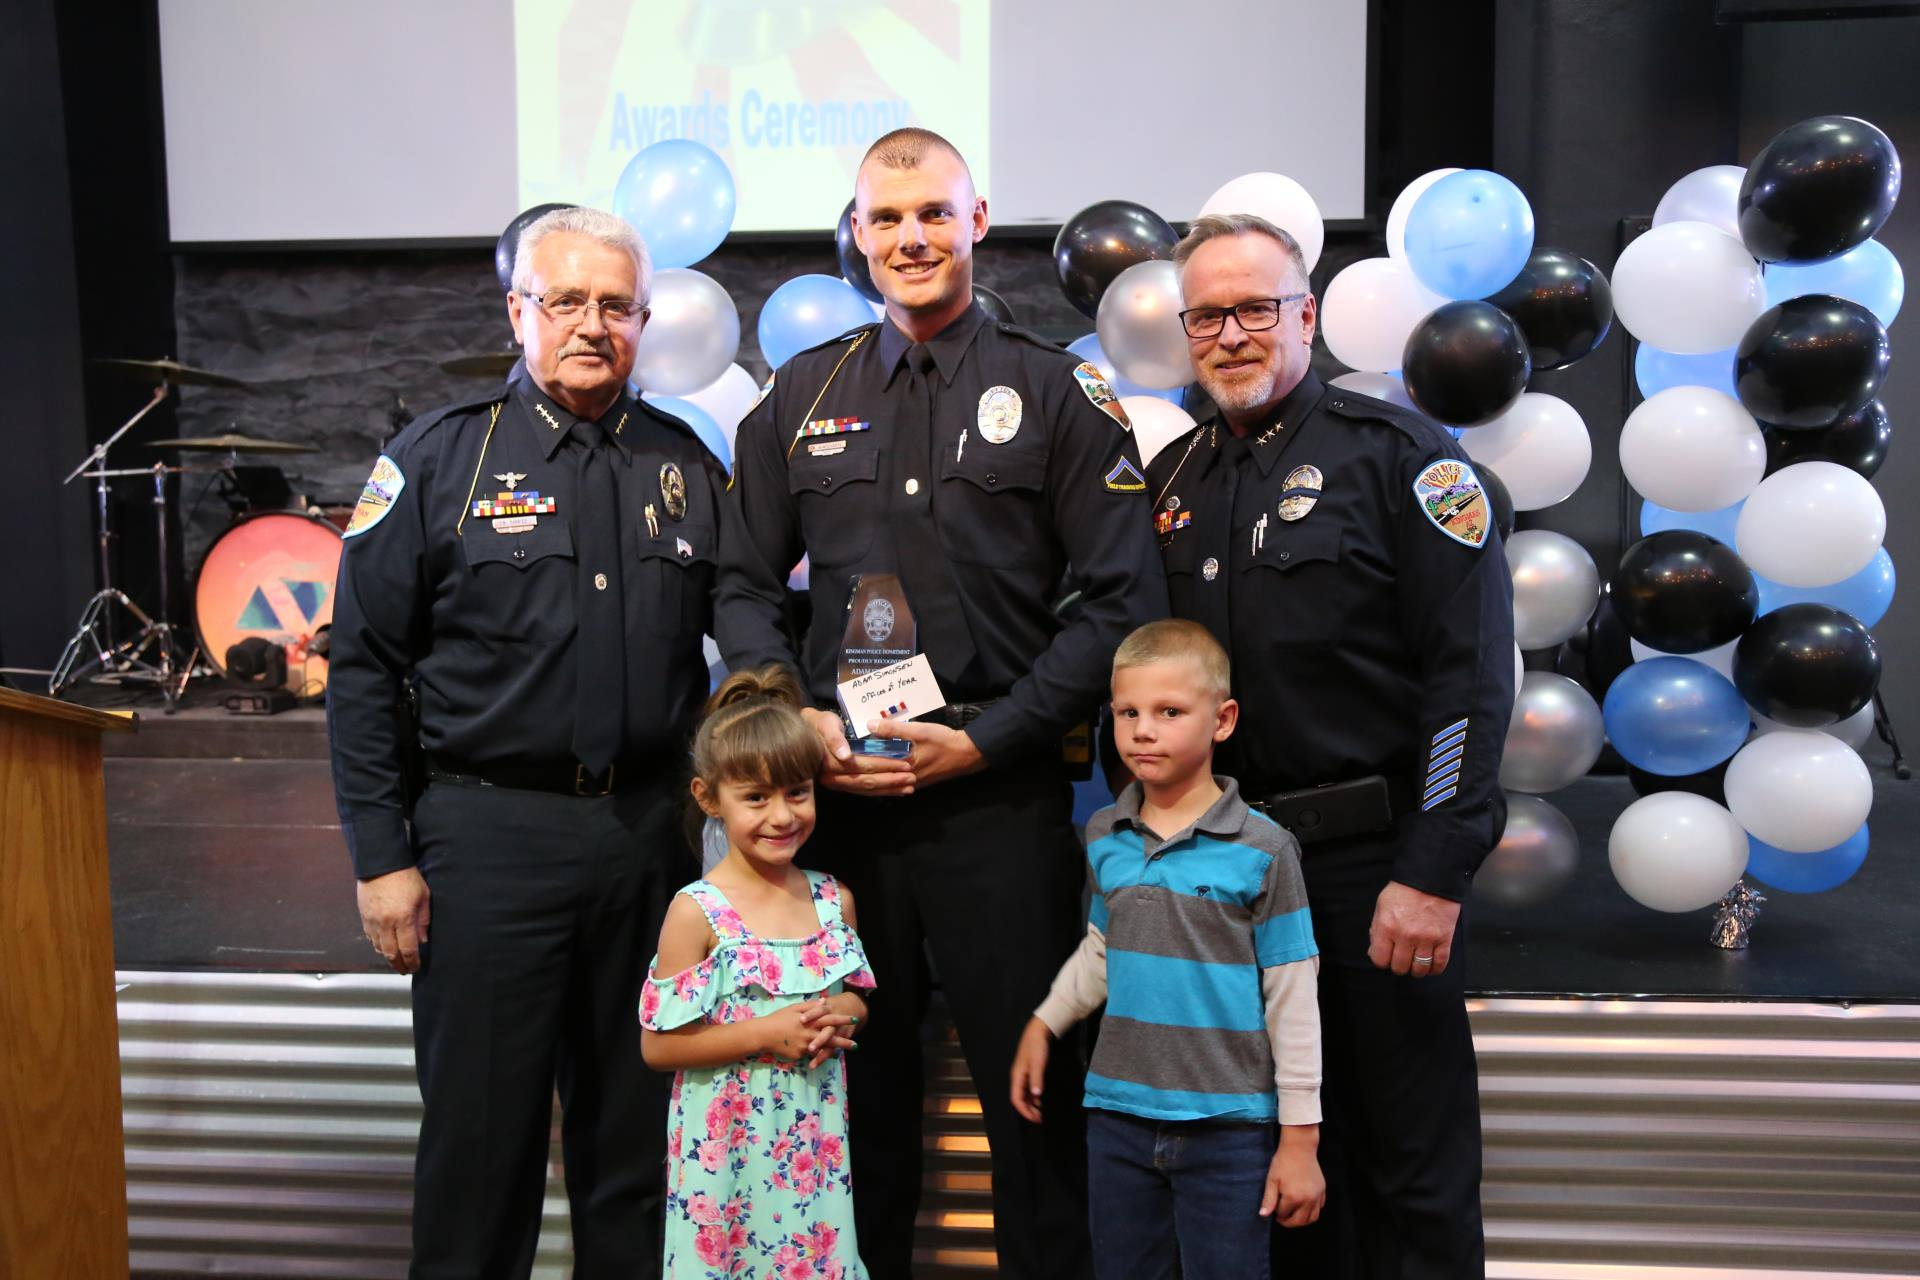 Chief Robert DeVries, Officer of the Year Adam Simonsen and two of his children, and Deputy Chief Rusty Cooper